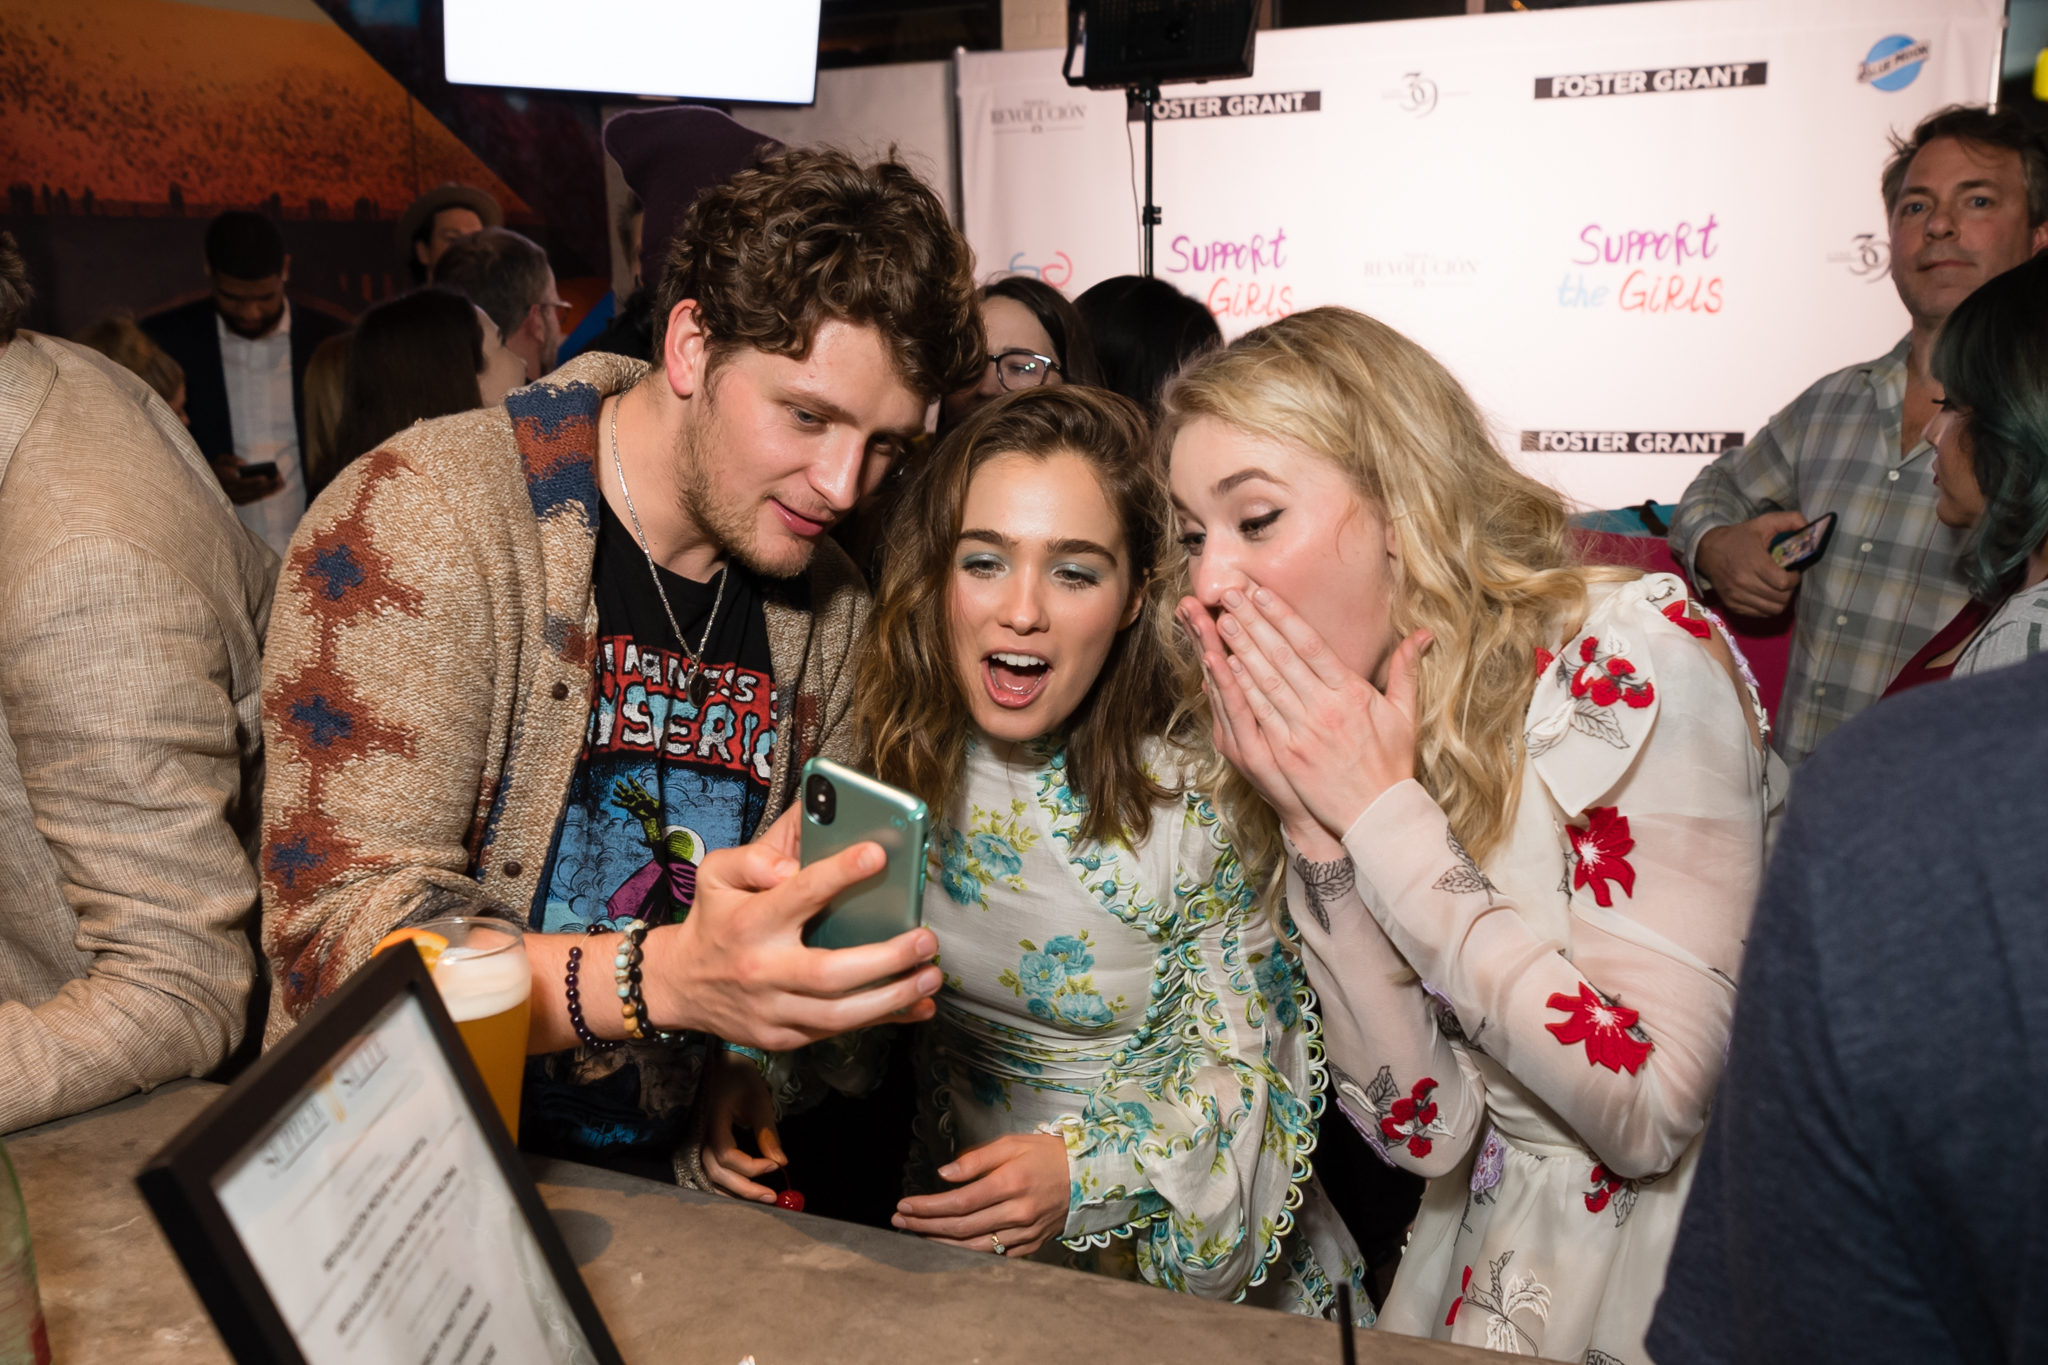 AJ Michalka and Haley Lu Richardson at an event for Support the Girls (2018)